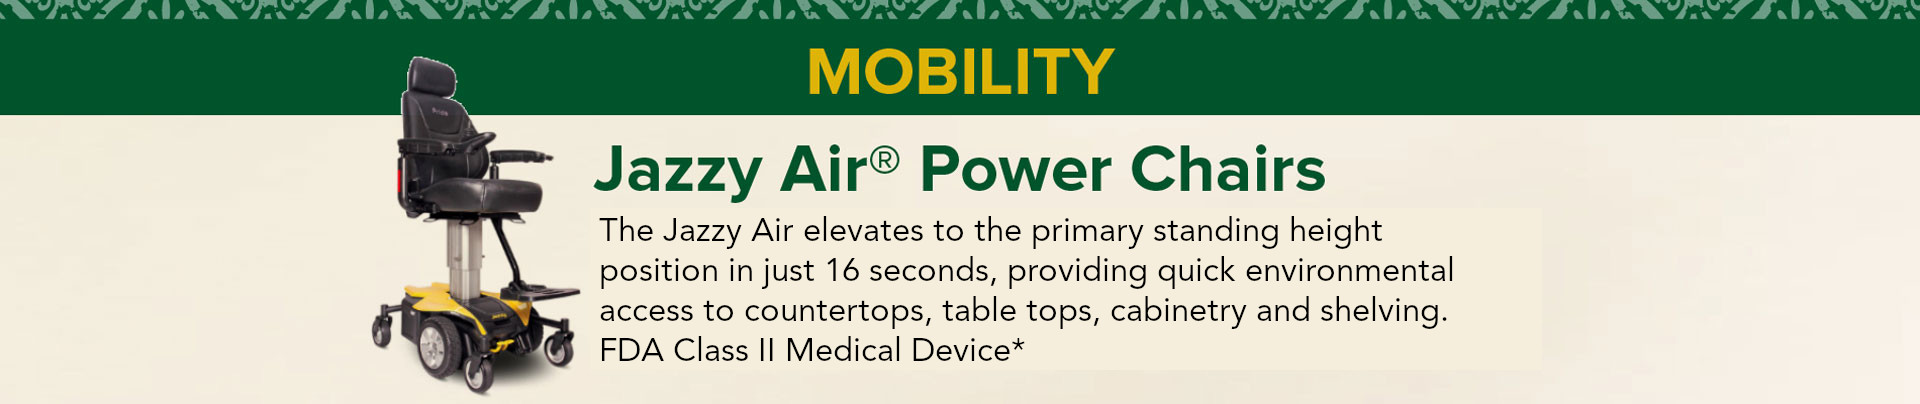 Mobility-Jazzy-Air